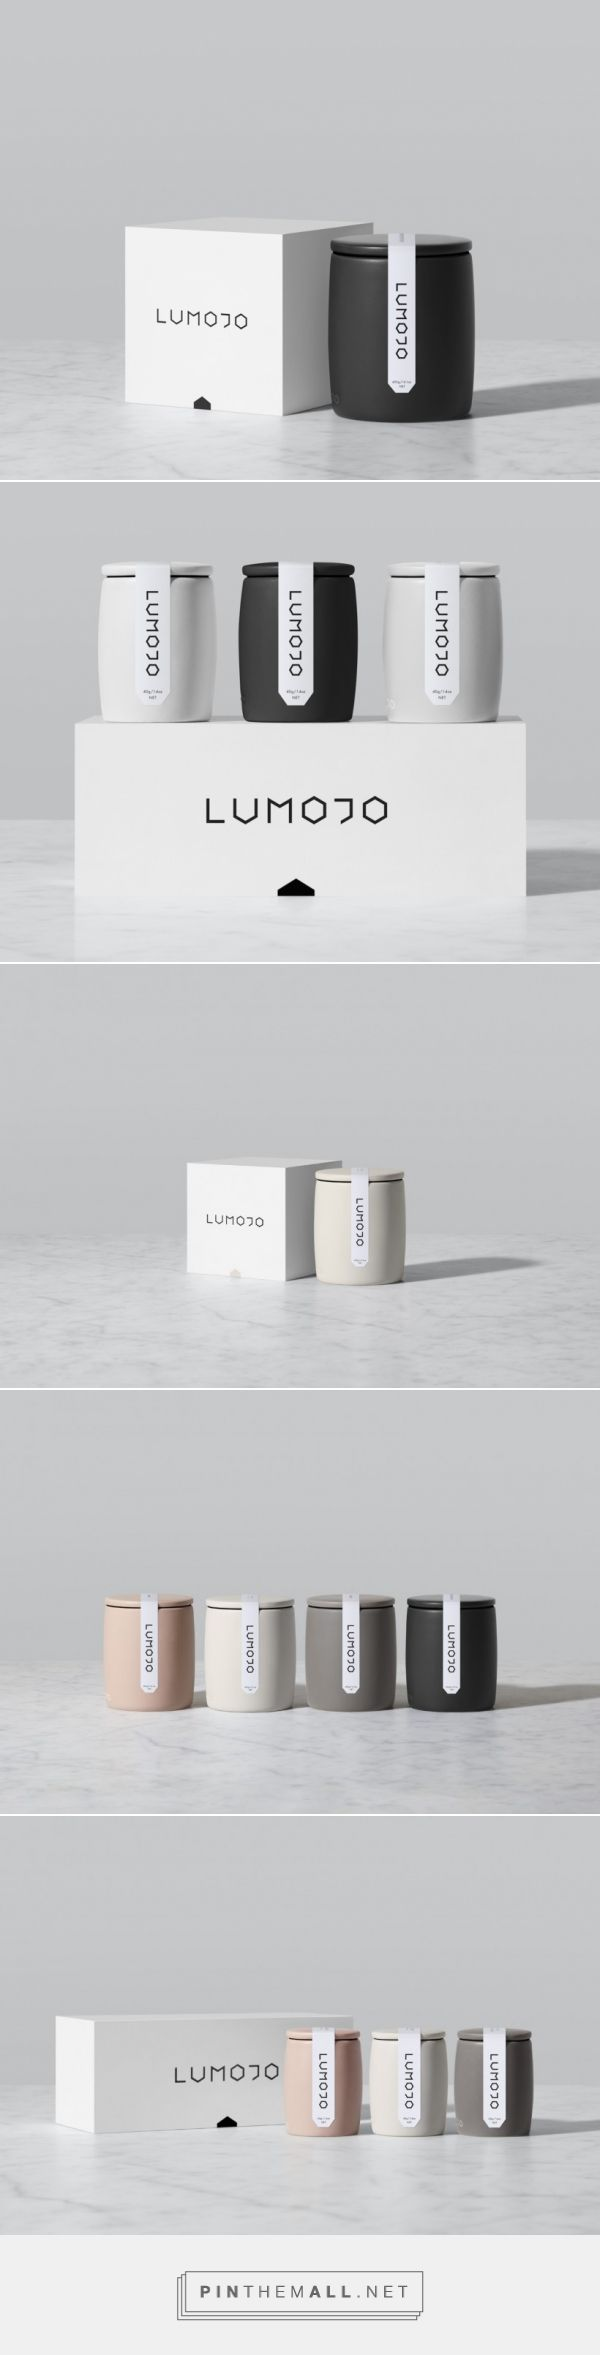 Lumojo Honey via Minimalissimo by Alt Group curated by Packaging Diva PD. each element has been thoroughly and thoughtfully considered, typography, precise labelling, and packaging details, are inspired by the hexagonal shape of the honey panels.